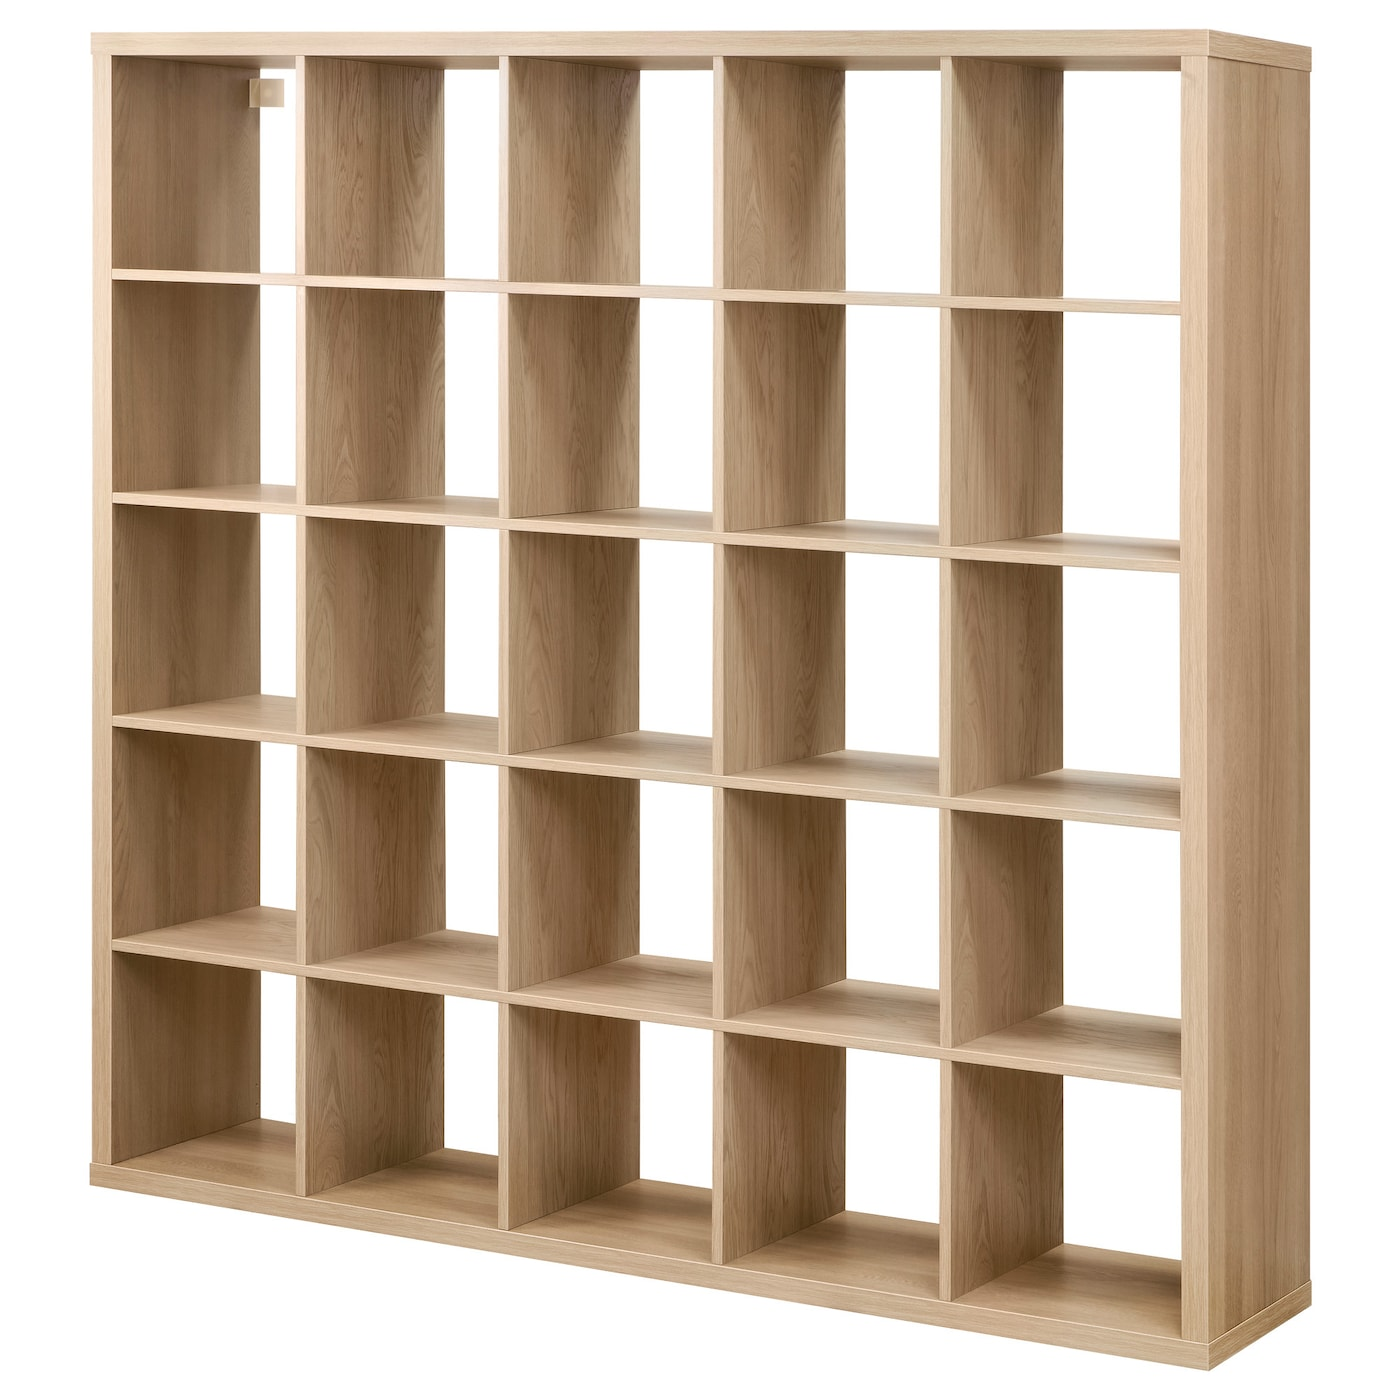 IKEA KALLAX shelving unit